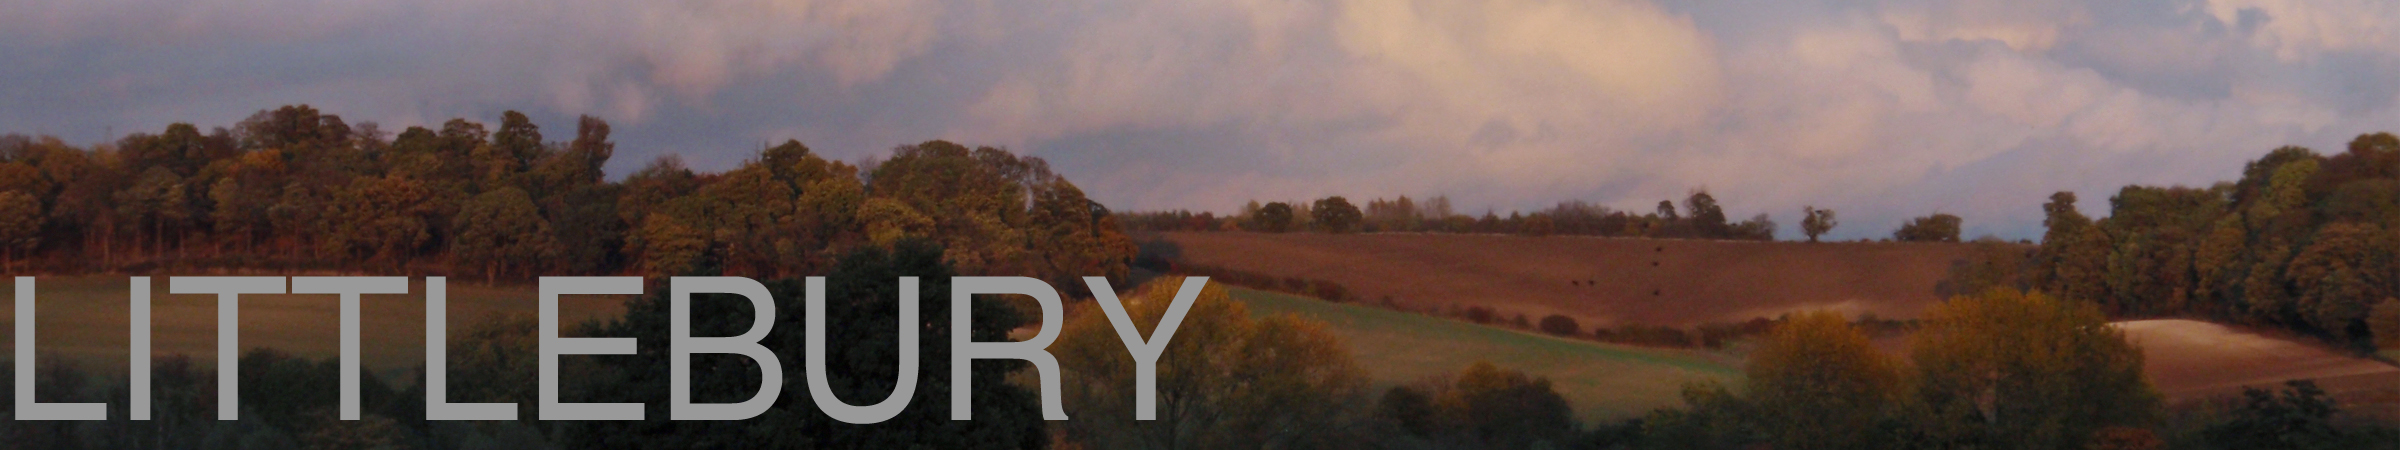 Littlebury Website Banner - November